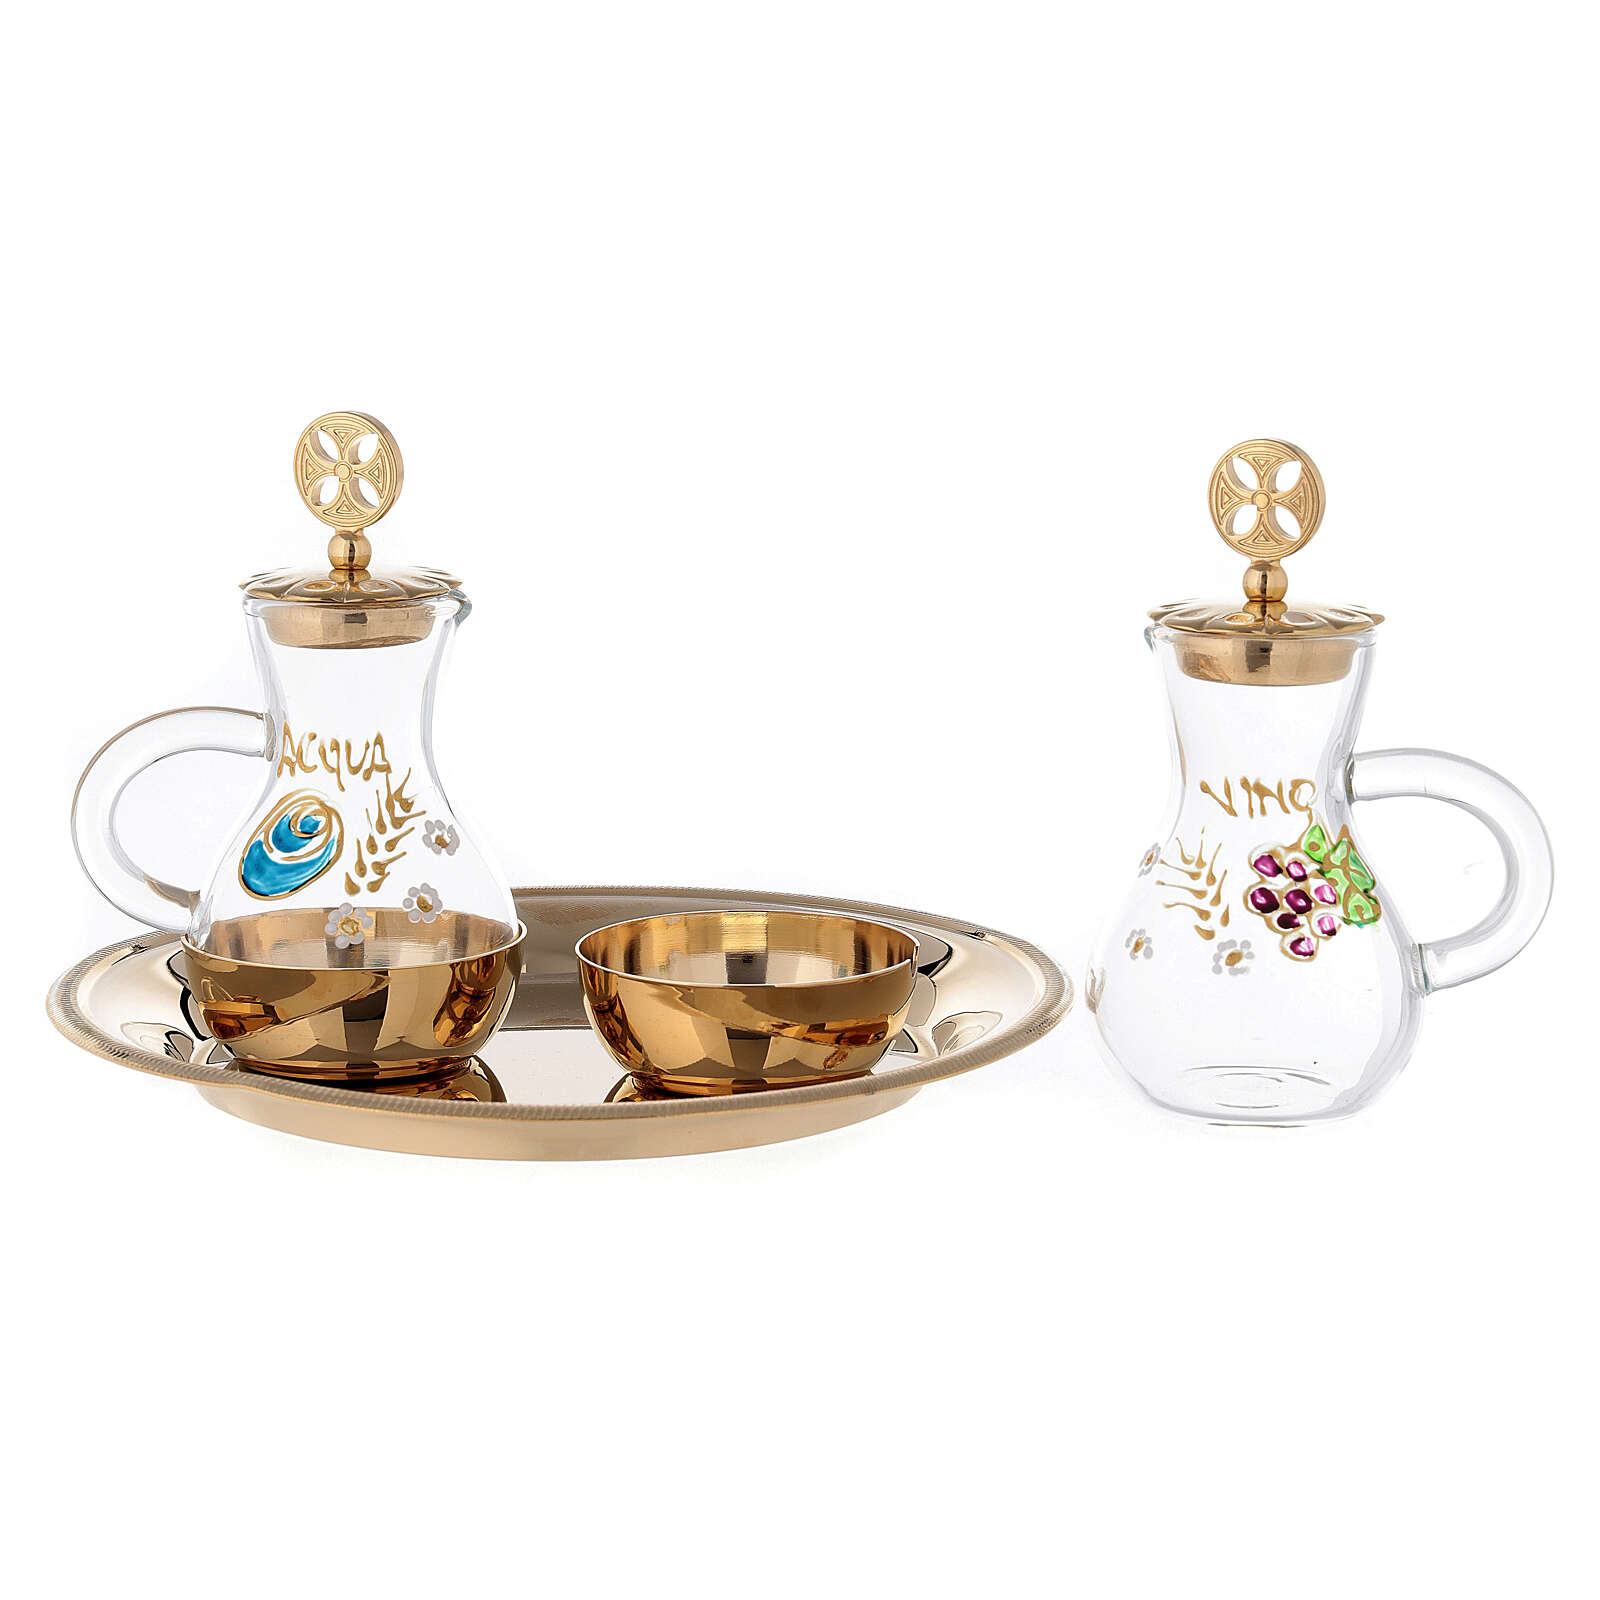 Water and wine service Parma model in golden brass 24K ml 75 4